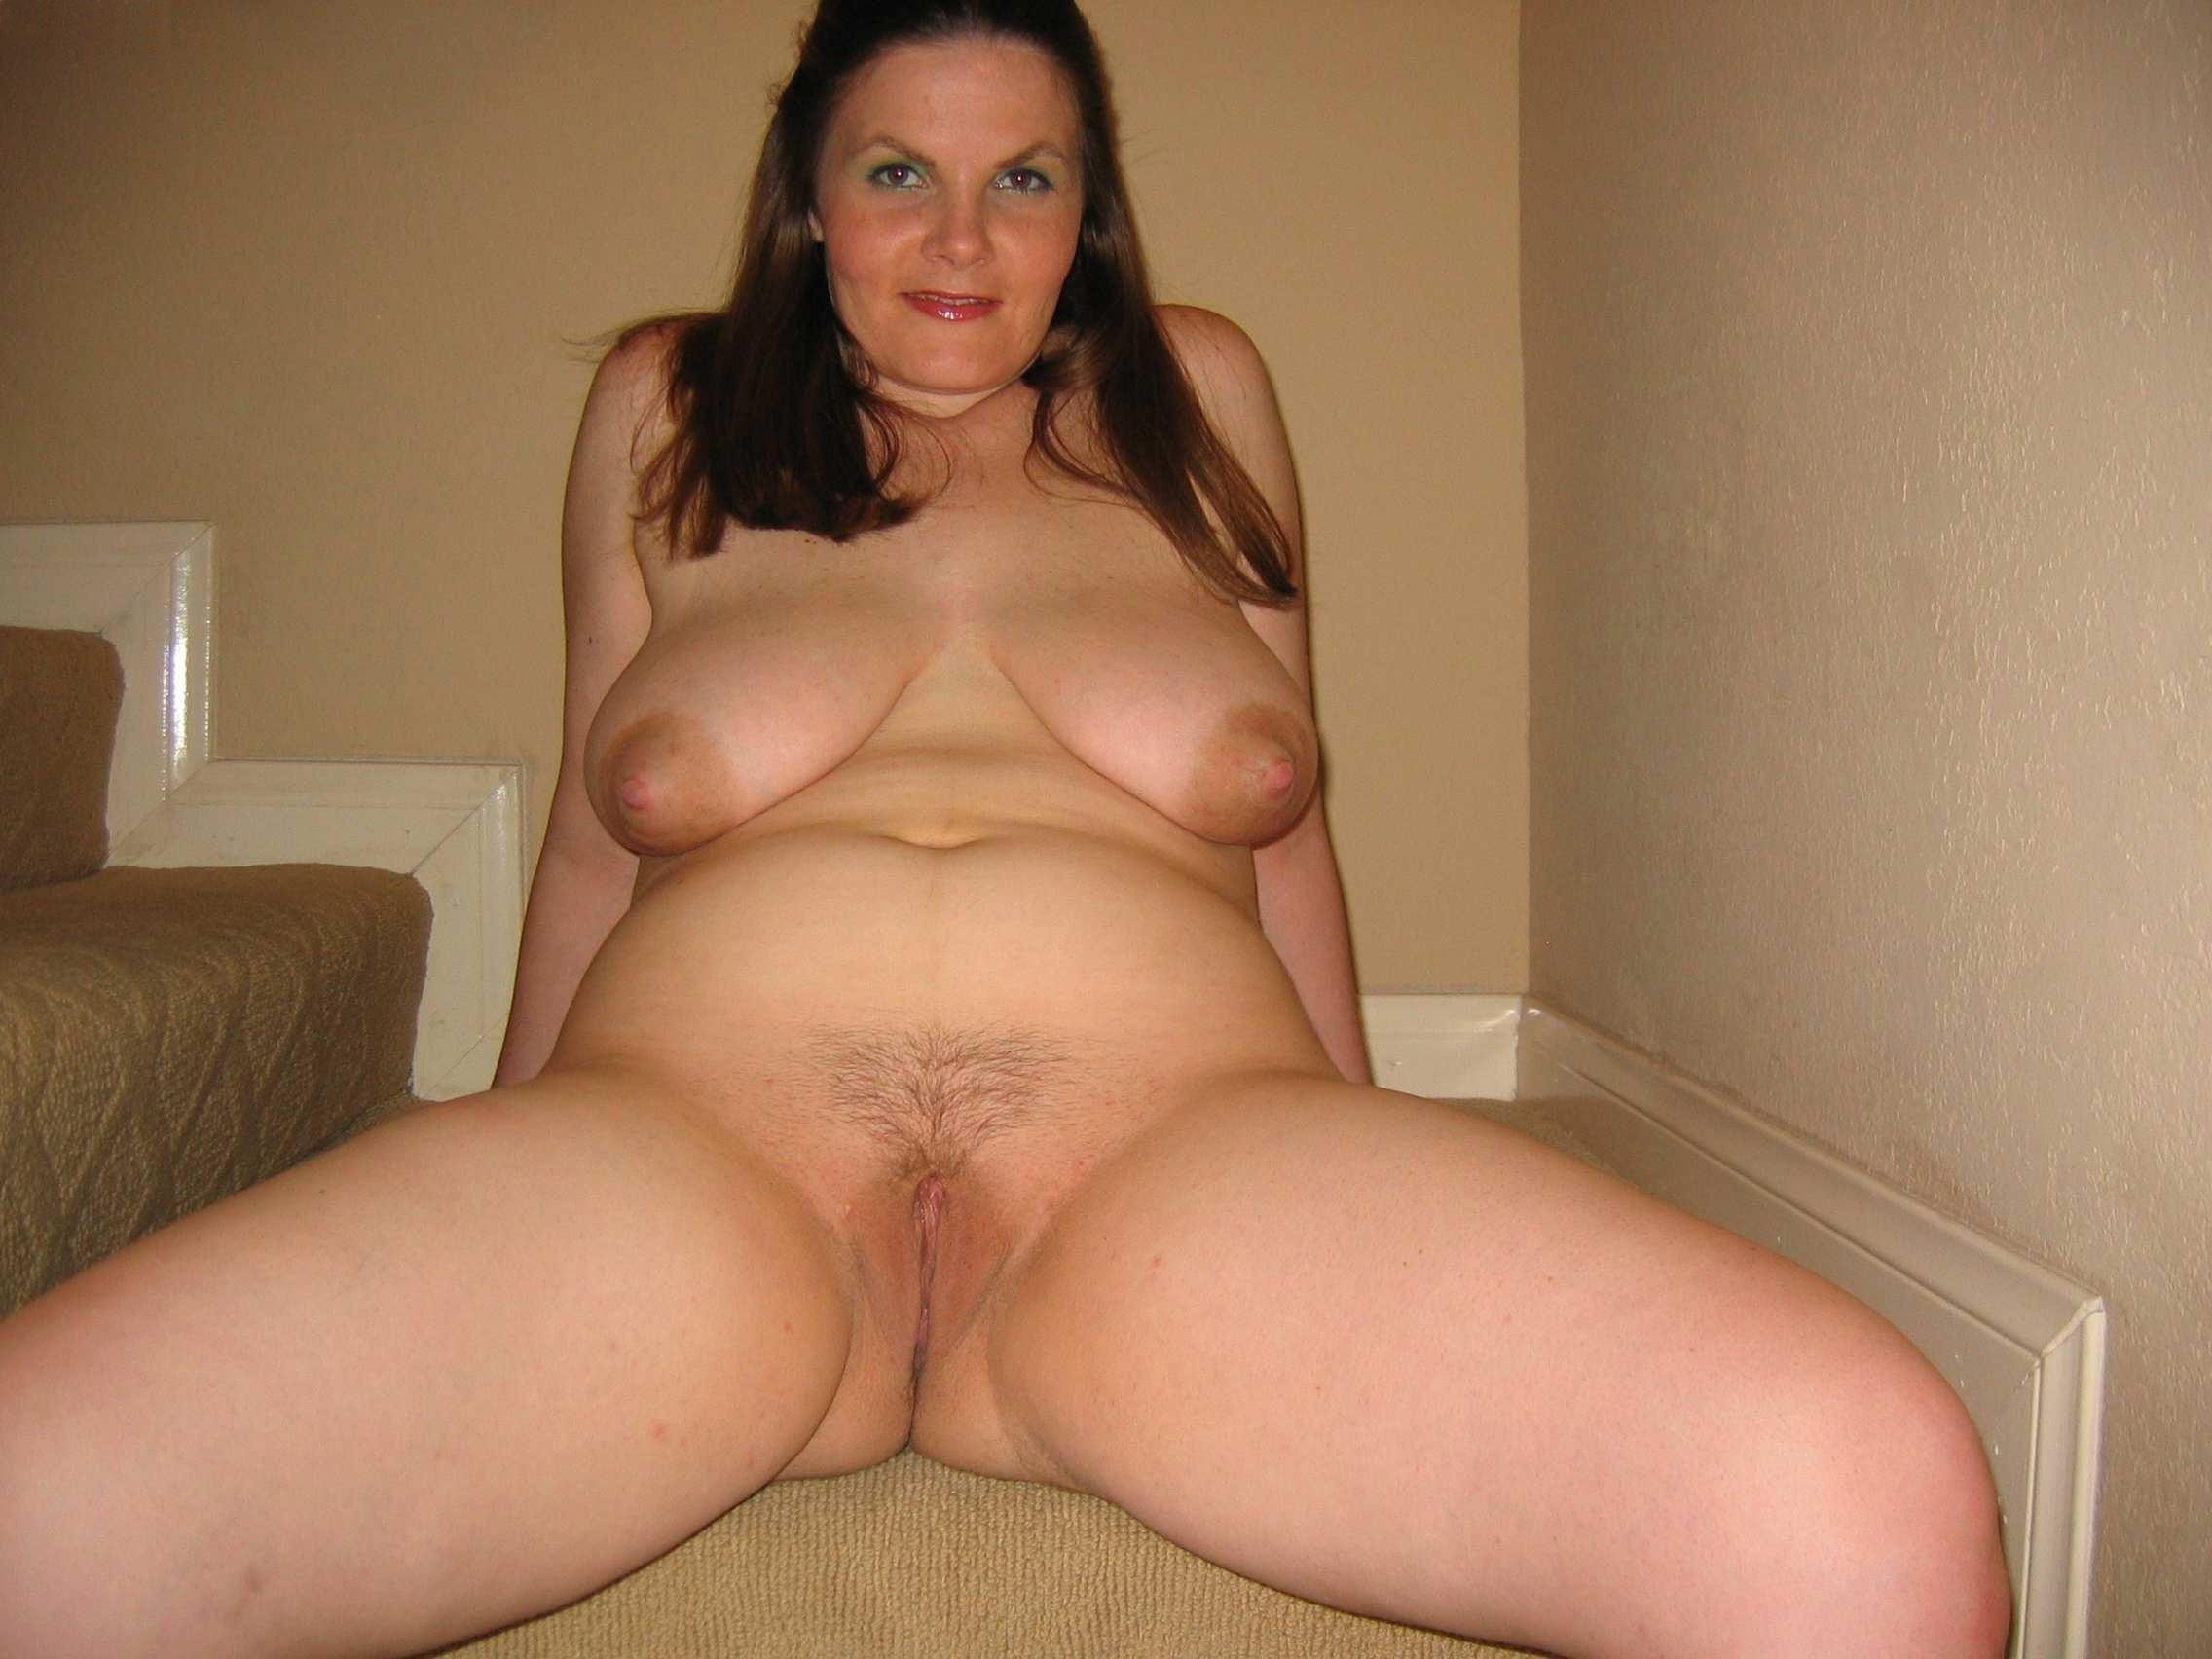 spread pussy pics mostly amateur 6 - motherless